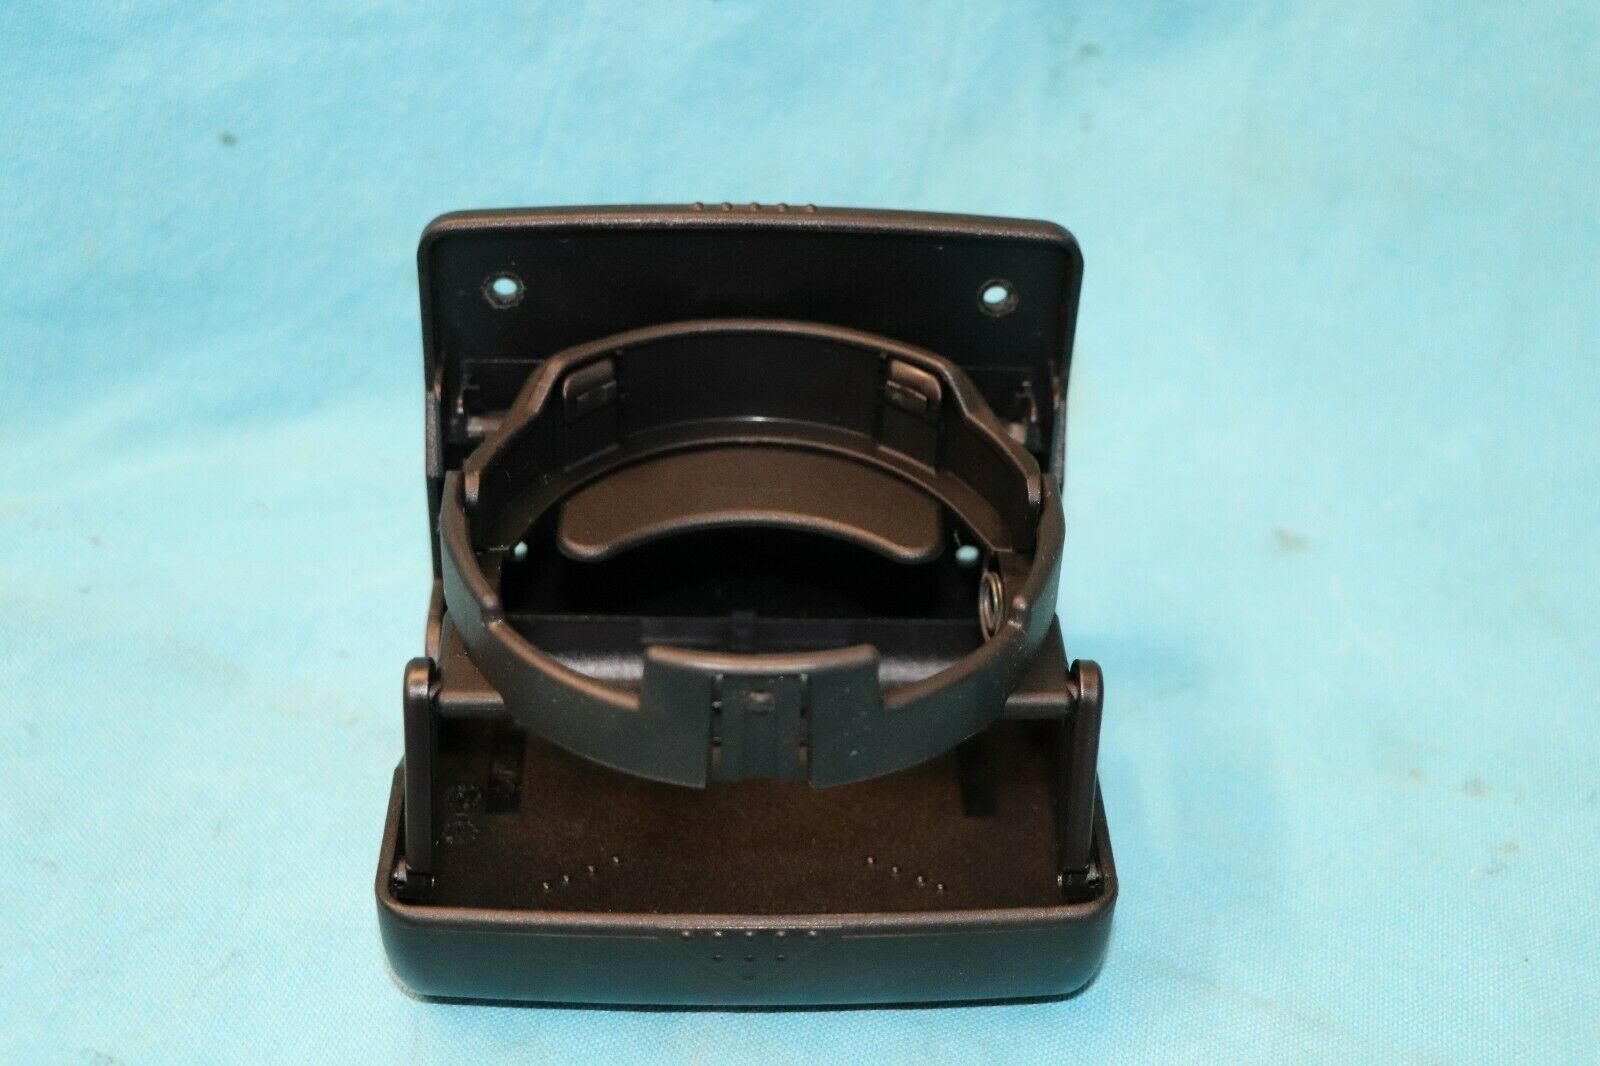 96-03 MERCEDES BENZ W210 E320 WAGON THIRD ROW REAR CUP HOLDER 2108100514 BLACK